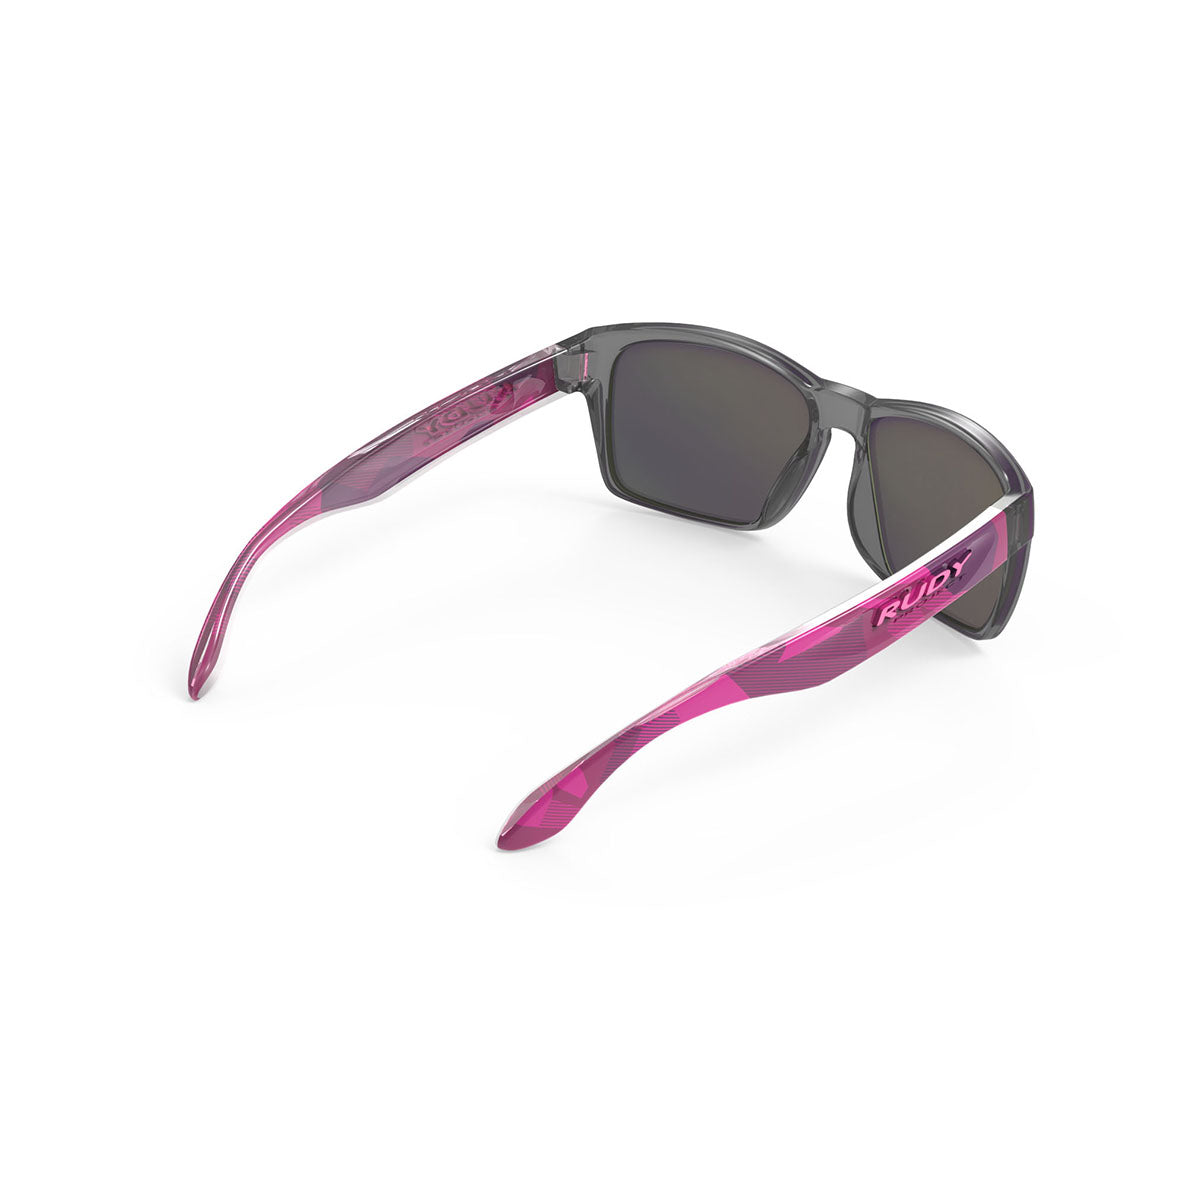 Rudy Project - Spinhawk Slim - frame color: Neo Camo Crystal Wine - lens color: Multilaser Violet - Bumper Color:  - photo angle: Top Back Angle Variant Hover Image